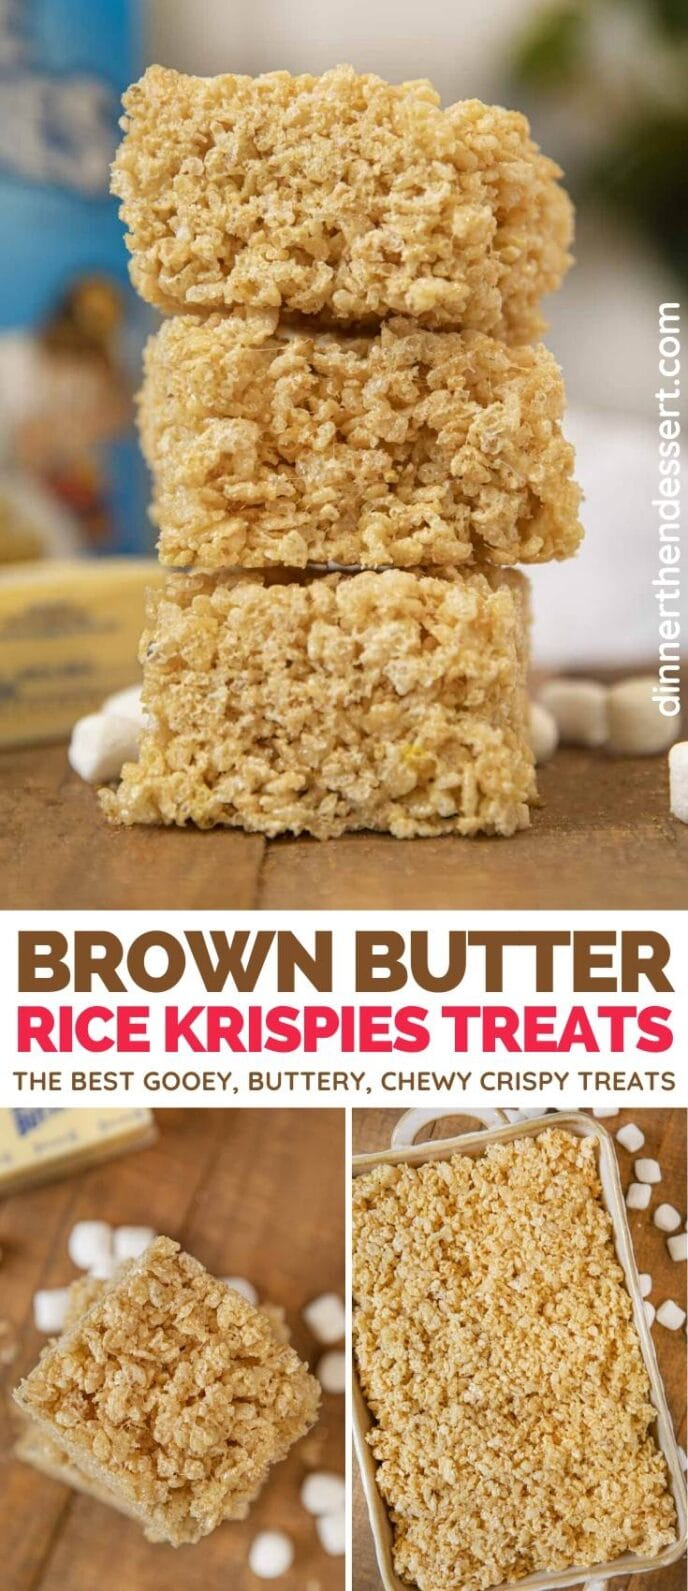 Brown Butter Rice Krispies Treats collage